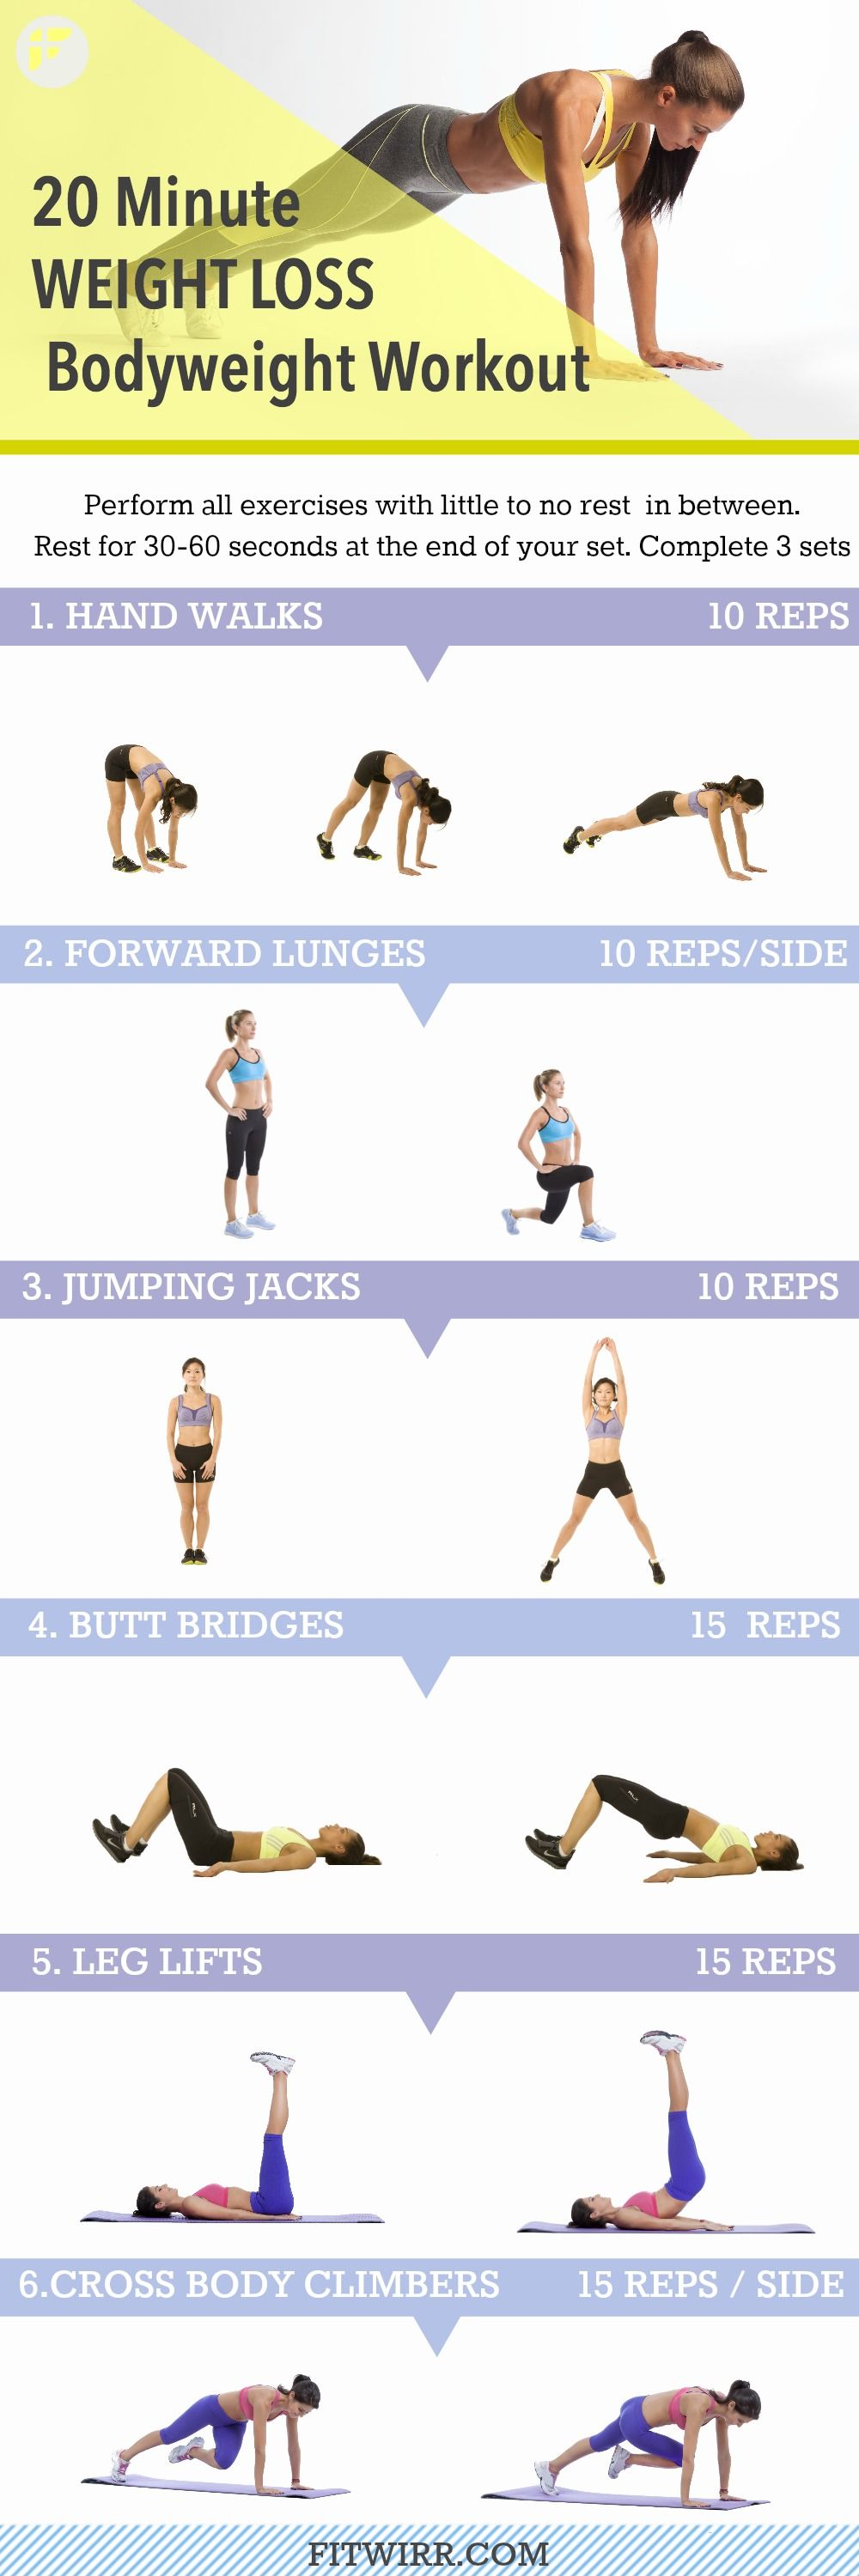 20 Minute Full Body Workout For Weight Loss Pictures ...